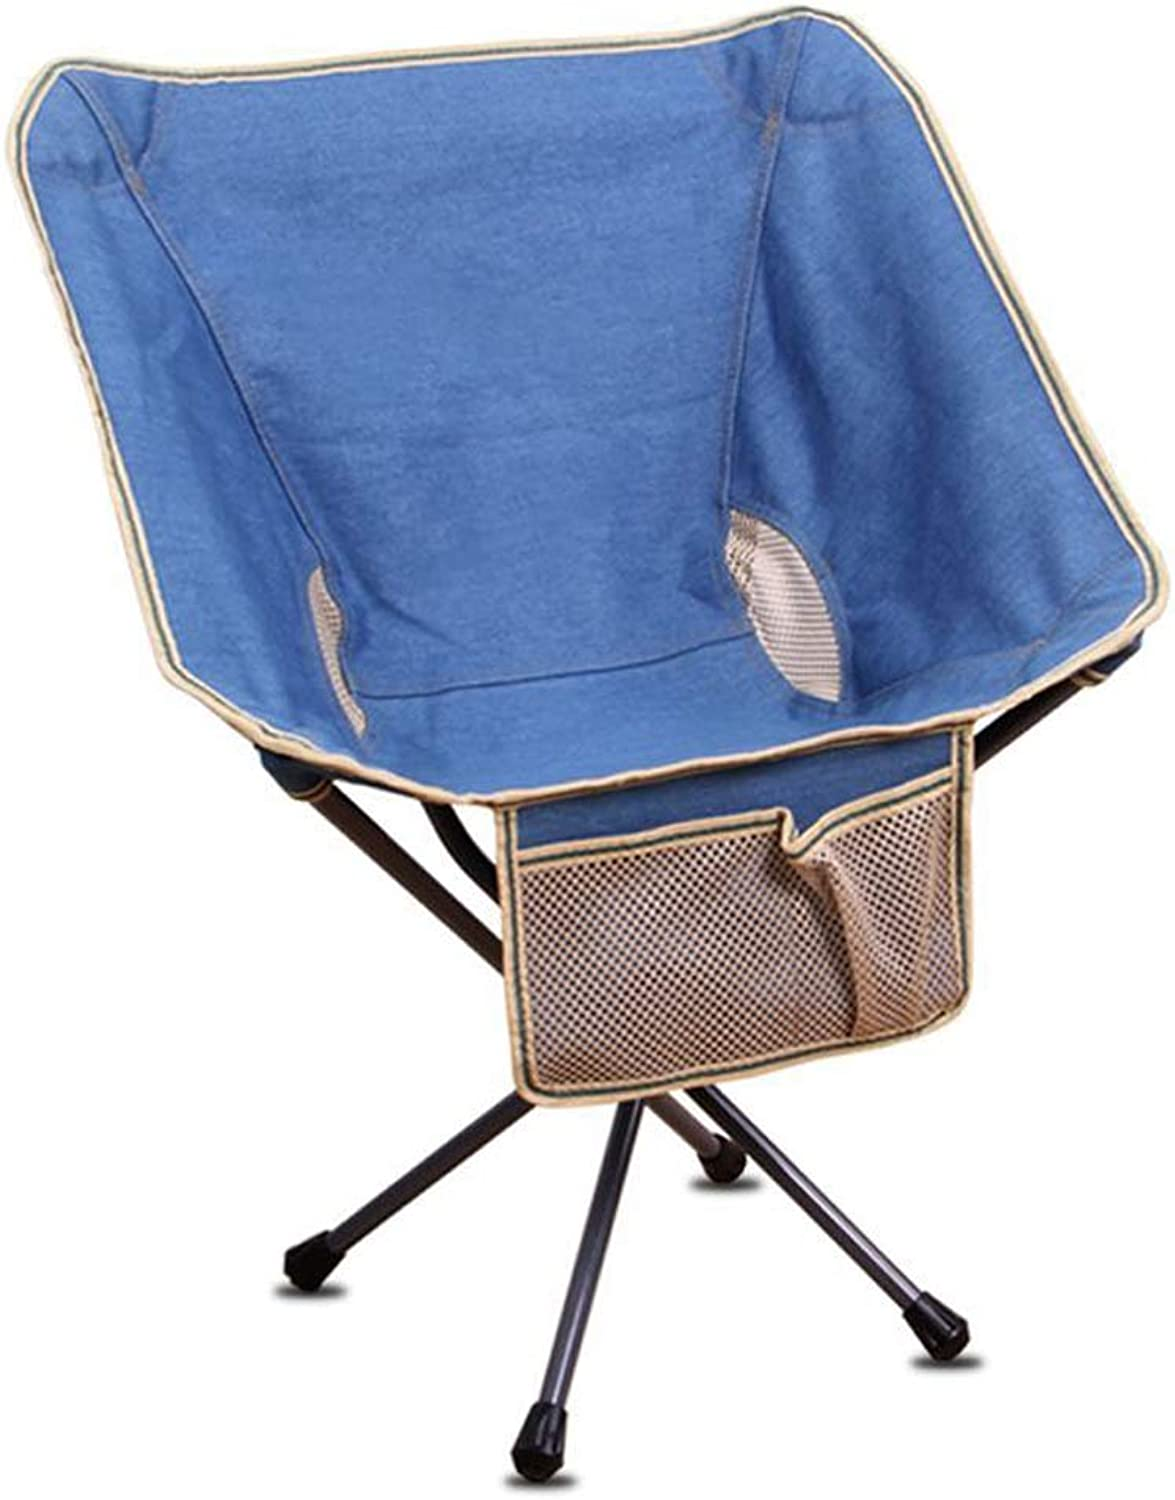 Camping Chair Heavy Duty Lumbar Back Support Oversized Quad Arm Chair Padded Folding, Supports 264 lbs,bluee